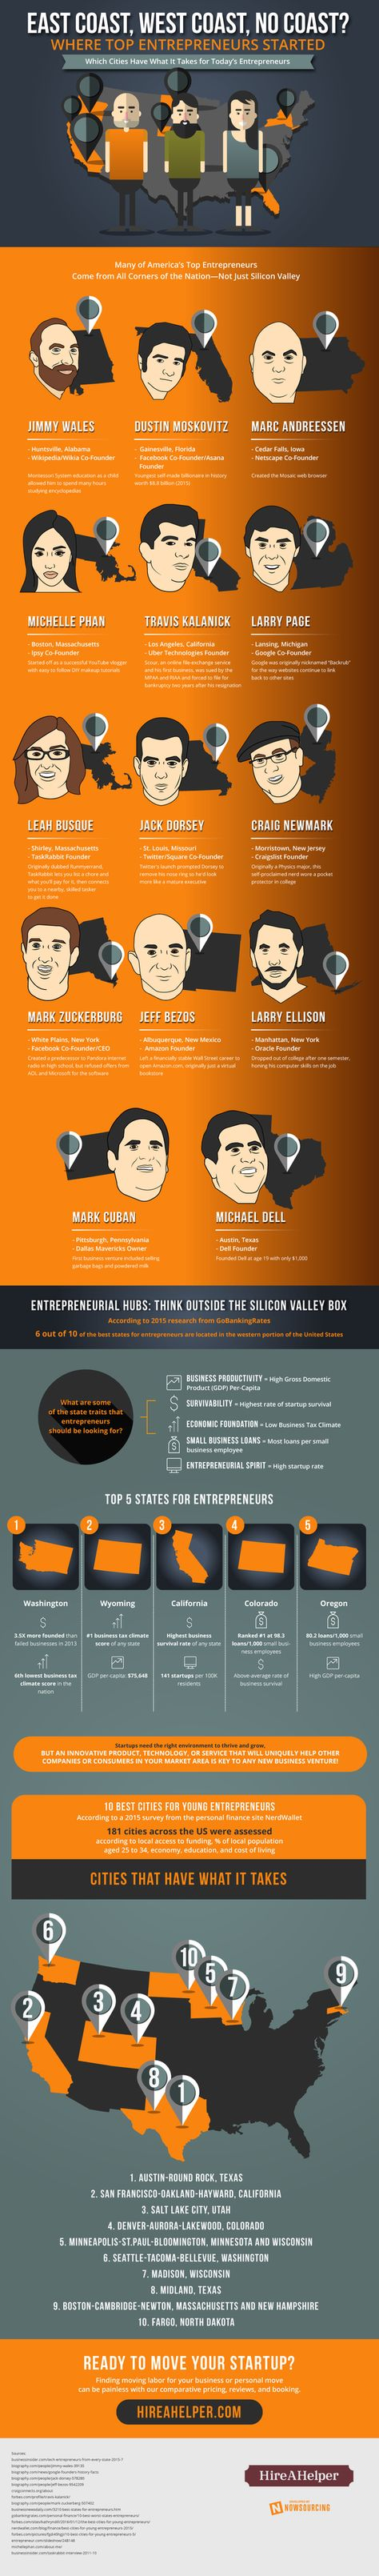 Where Did 13 Top Entrepreneurs Get Their Start Which Cities Have What It Takes For Today S Entrepreneurs Infographic Top Entrepreneurs Business Infographic Entrepreneur Infographic